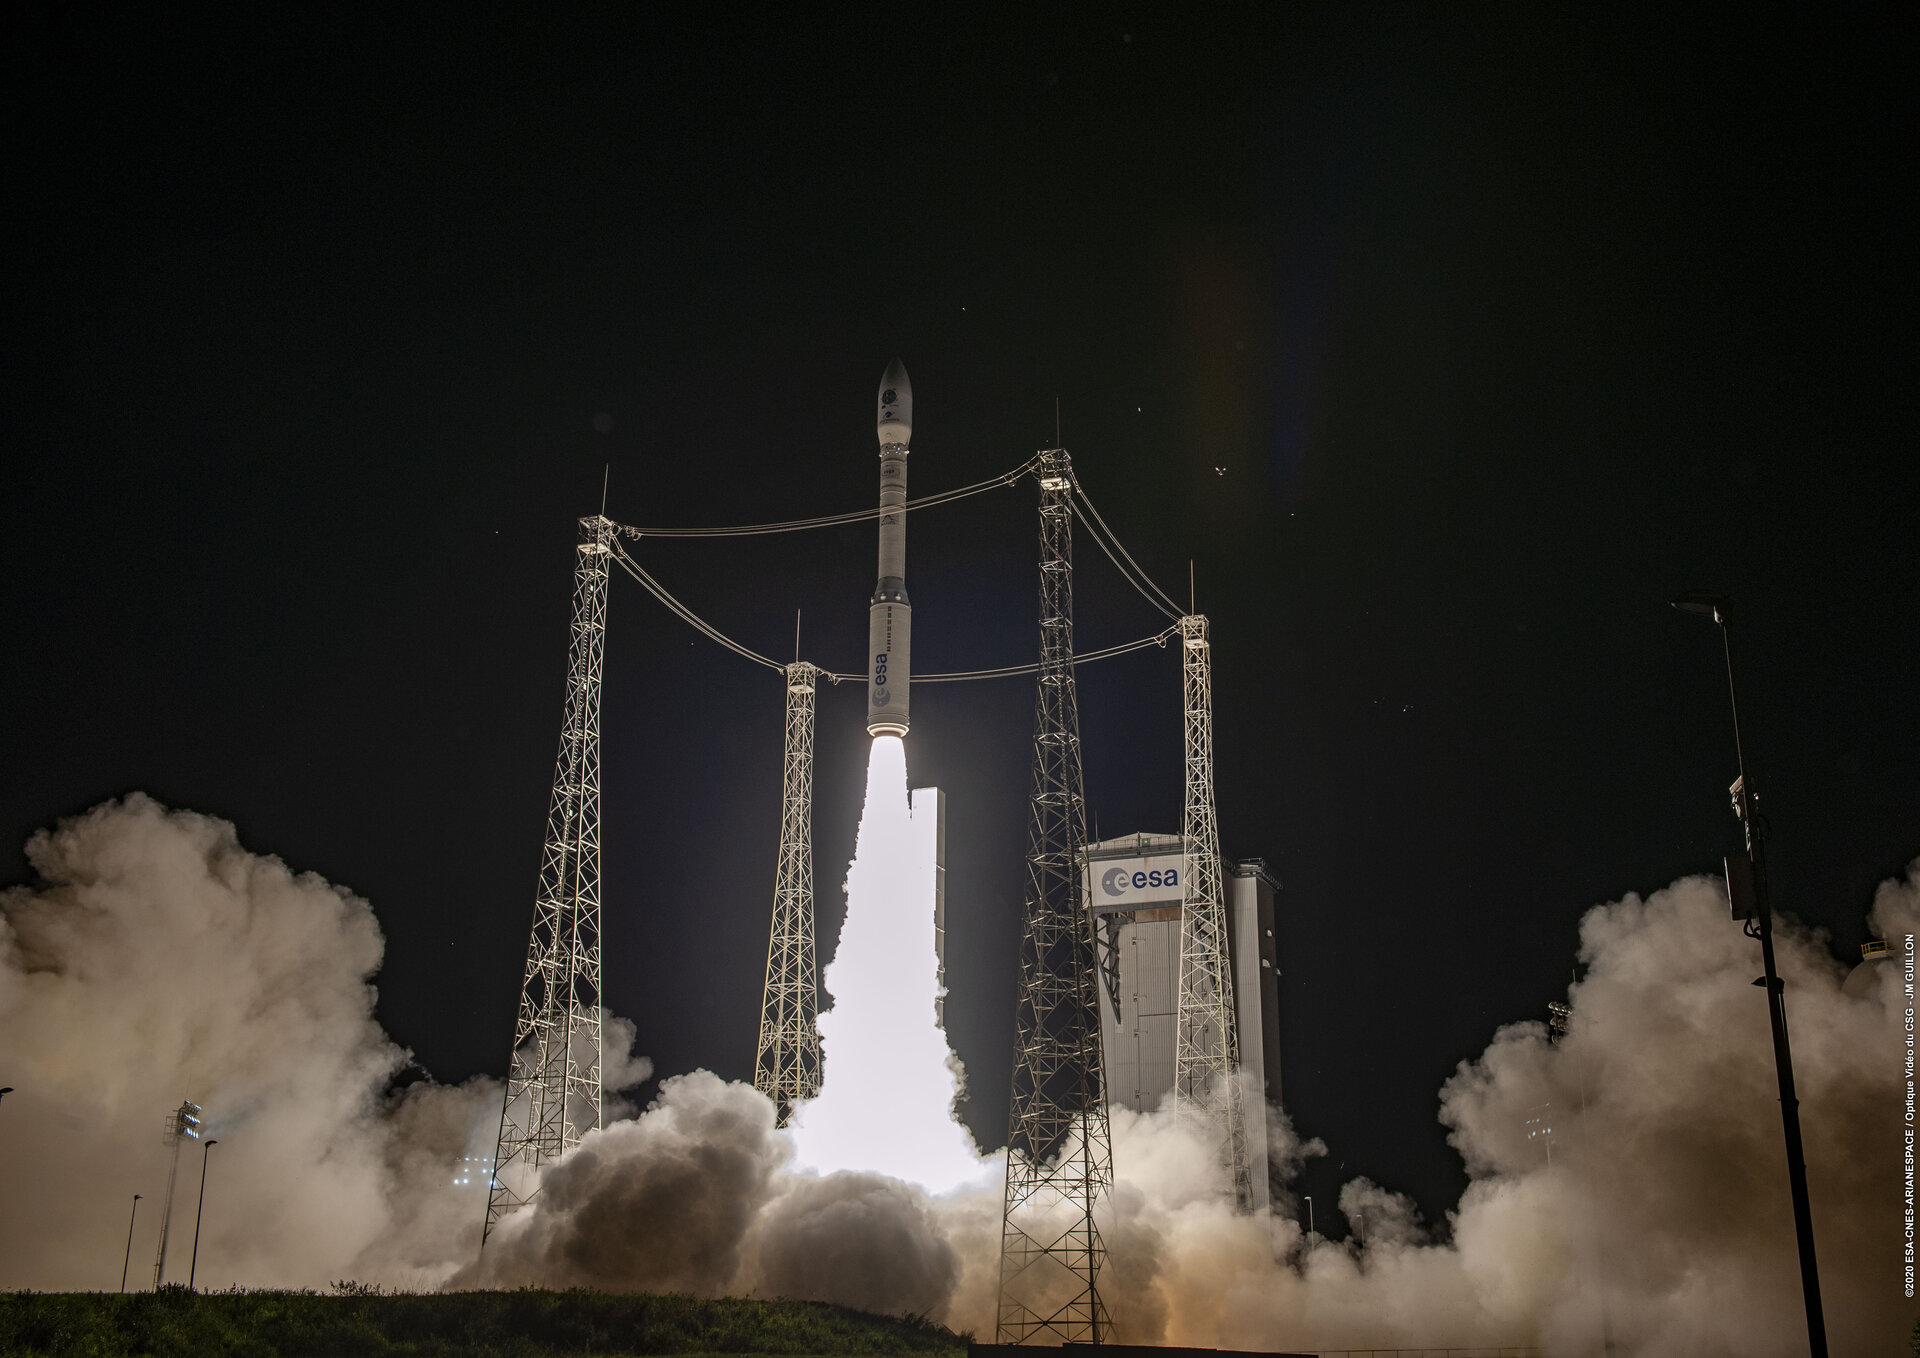 Vega lifts off on its first rideshare launch dedicated to light satellites using its new Small Spacecraft Mission Service dispenser.